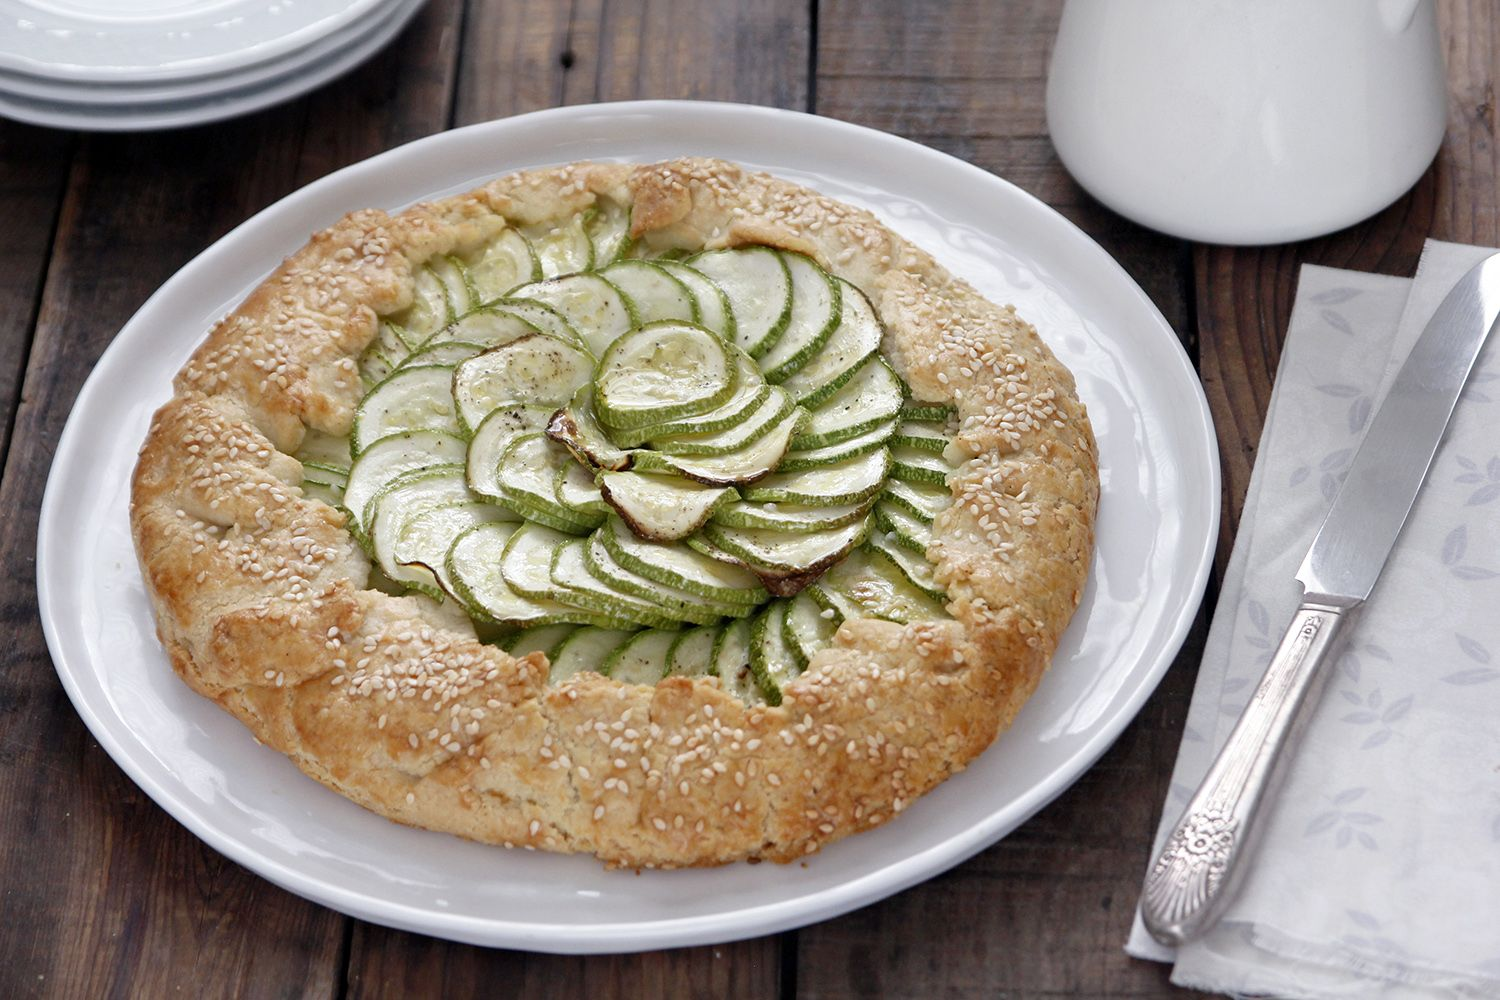 Cheese and Pesto Zucchini Galette